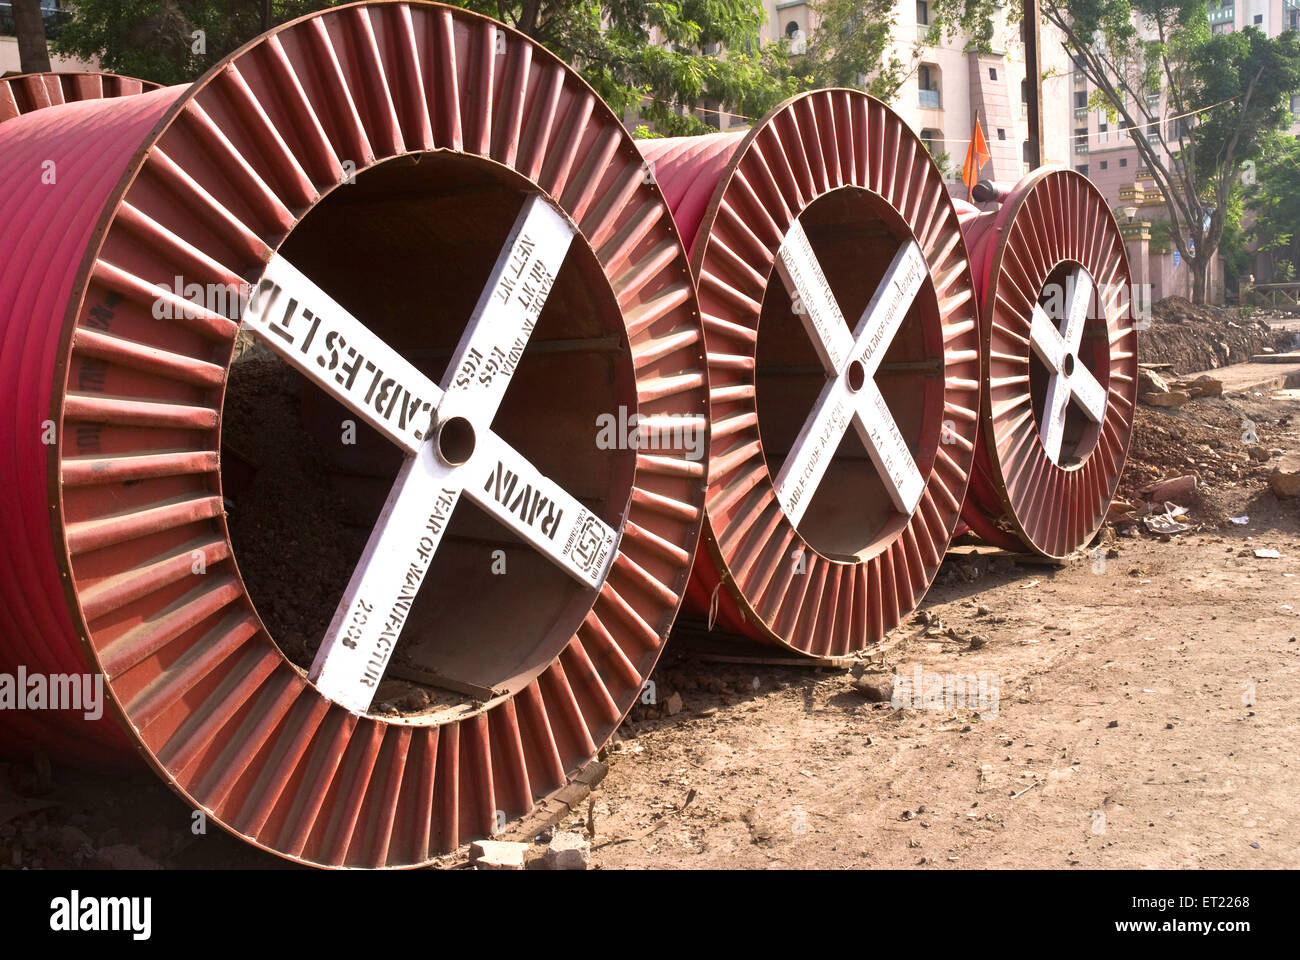 Cable drums power cables ; Pune ; Maharashtra ; India 2008 - Stock Image